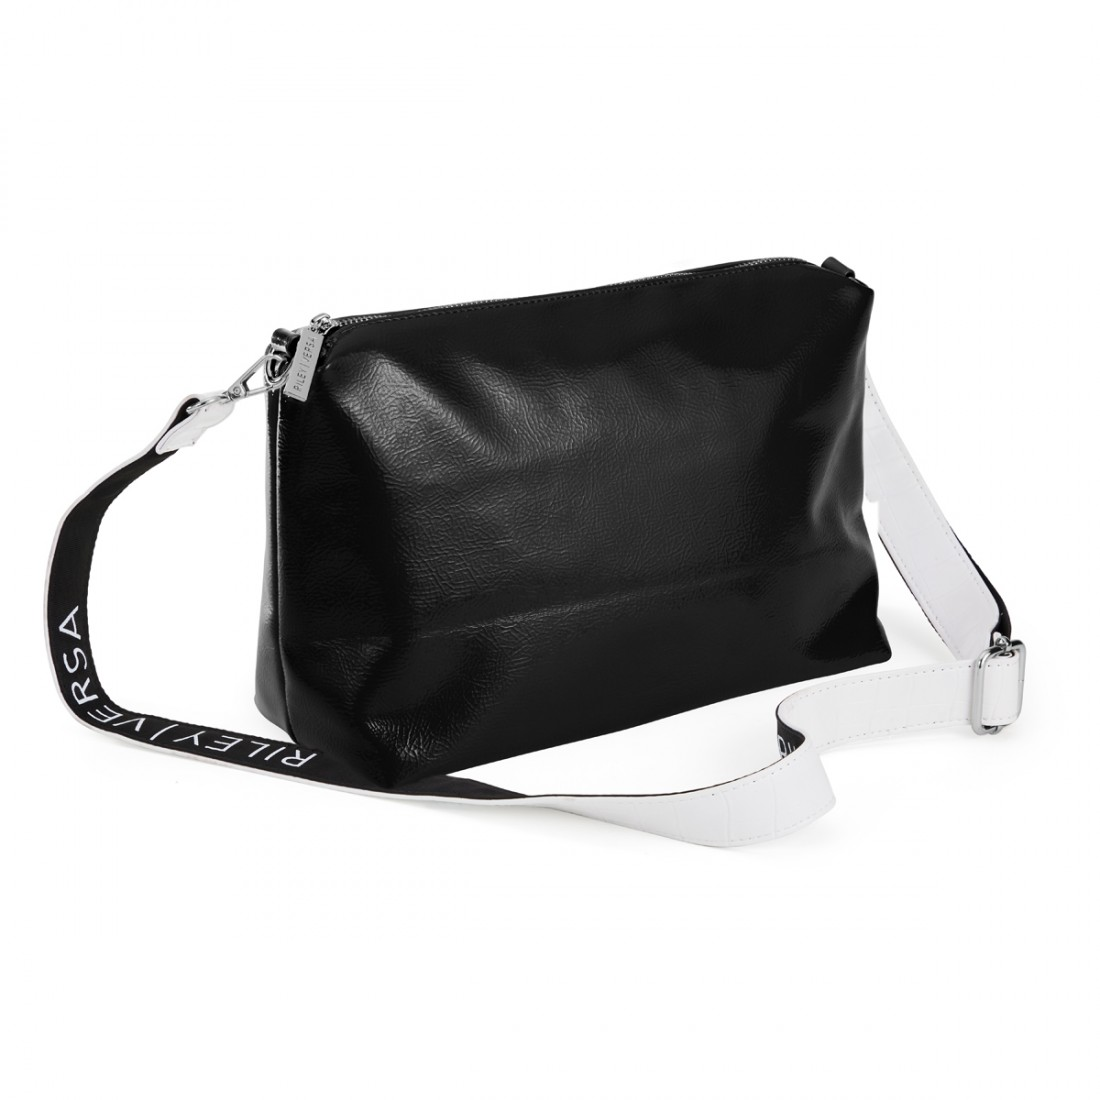 Riley Versa Black Leather Pouch with Strap 50